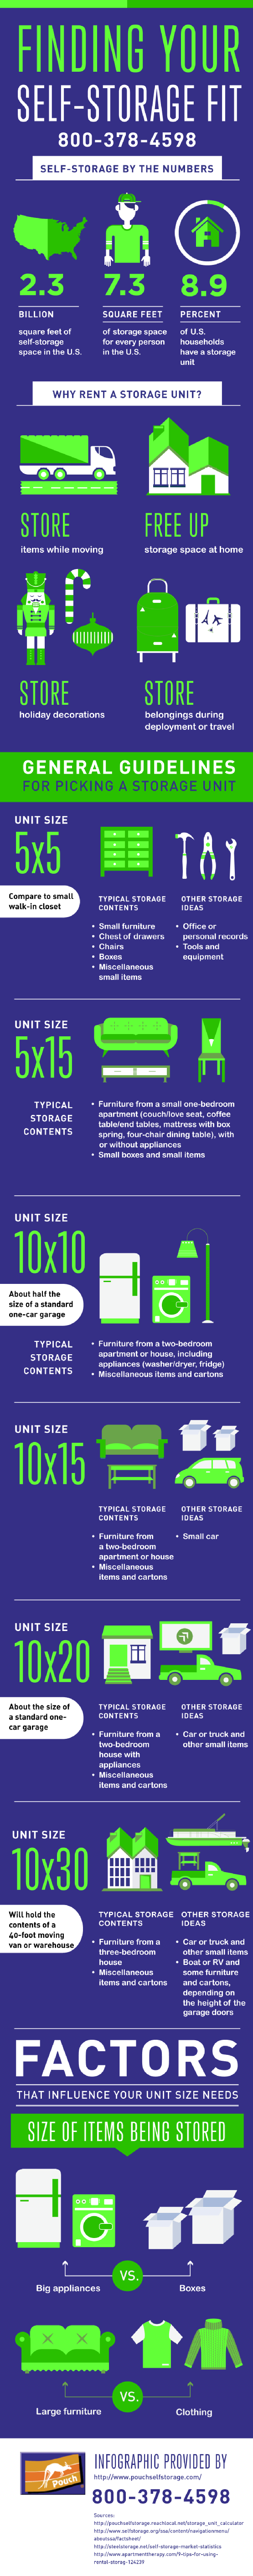 POUCH-Self-Storage-and-RV-Infographic - Updated